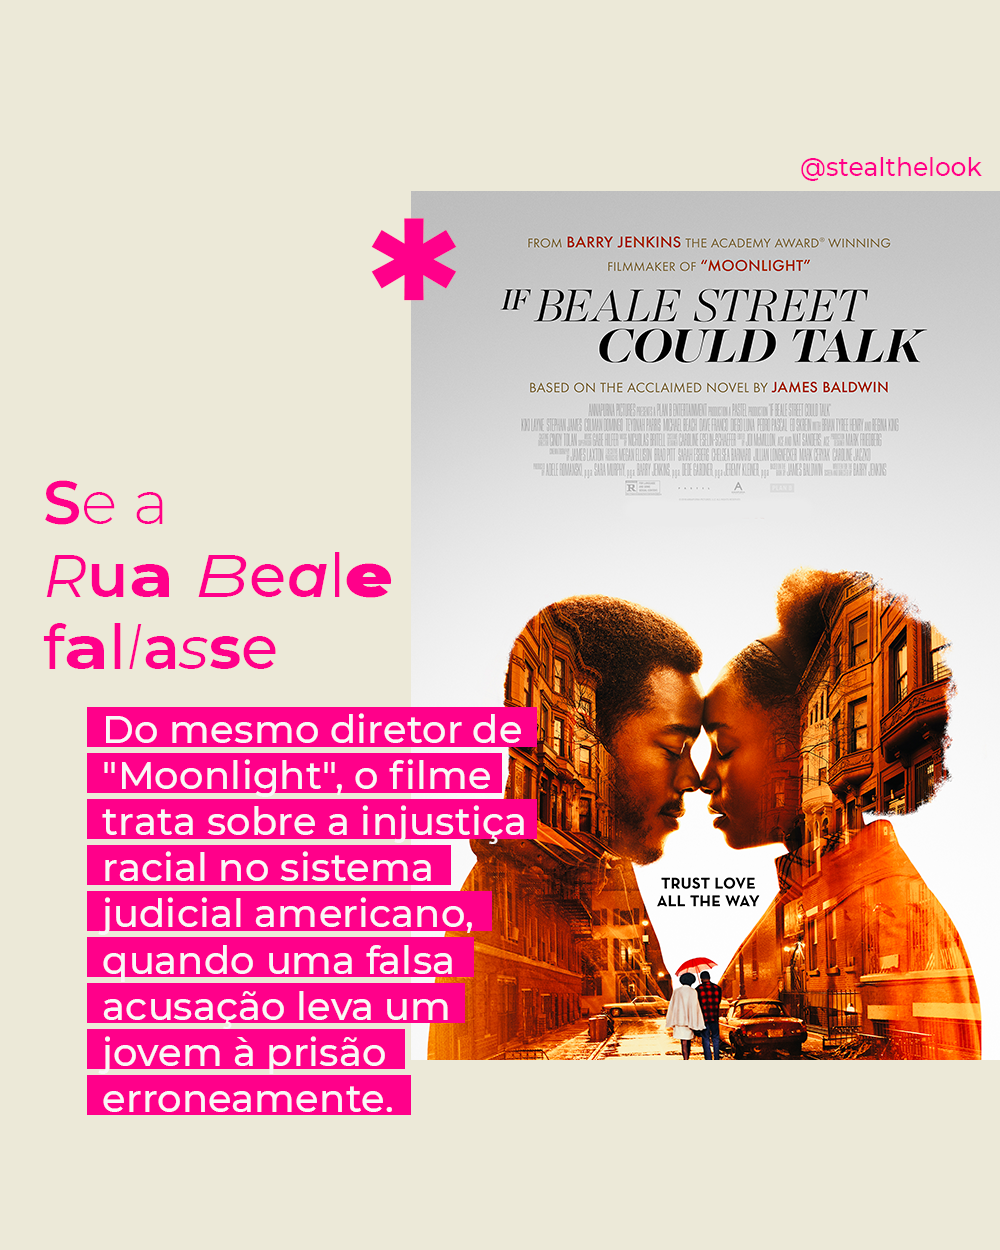 It girls - Filmes e séries - Antirracismo - Outono - Street Style - https://stealthelook.com.br